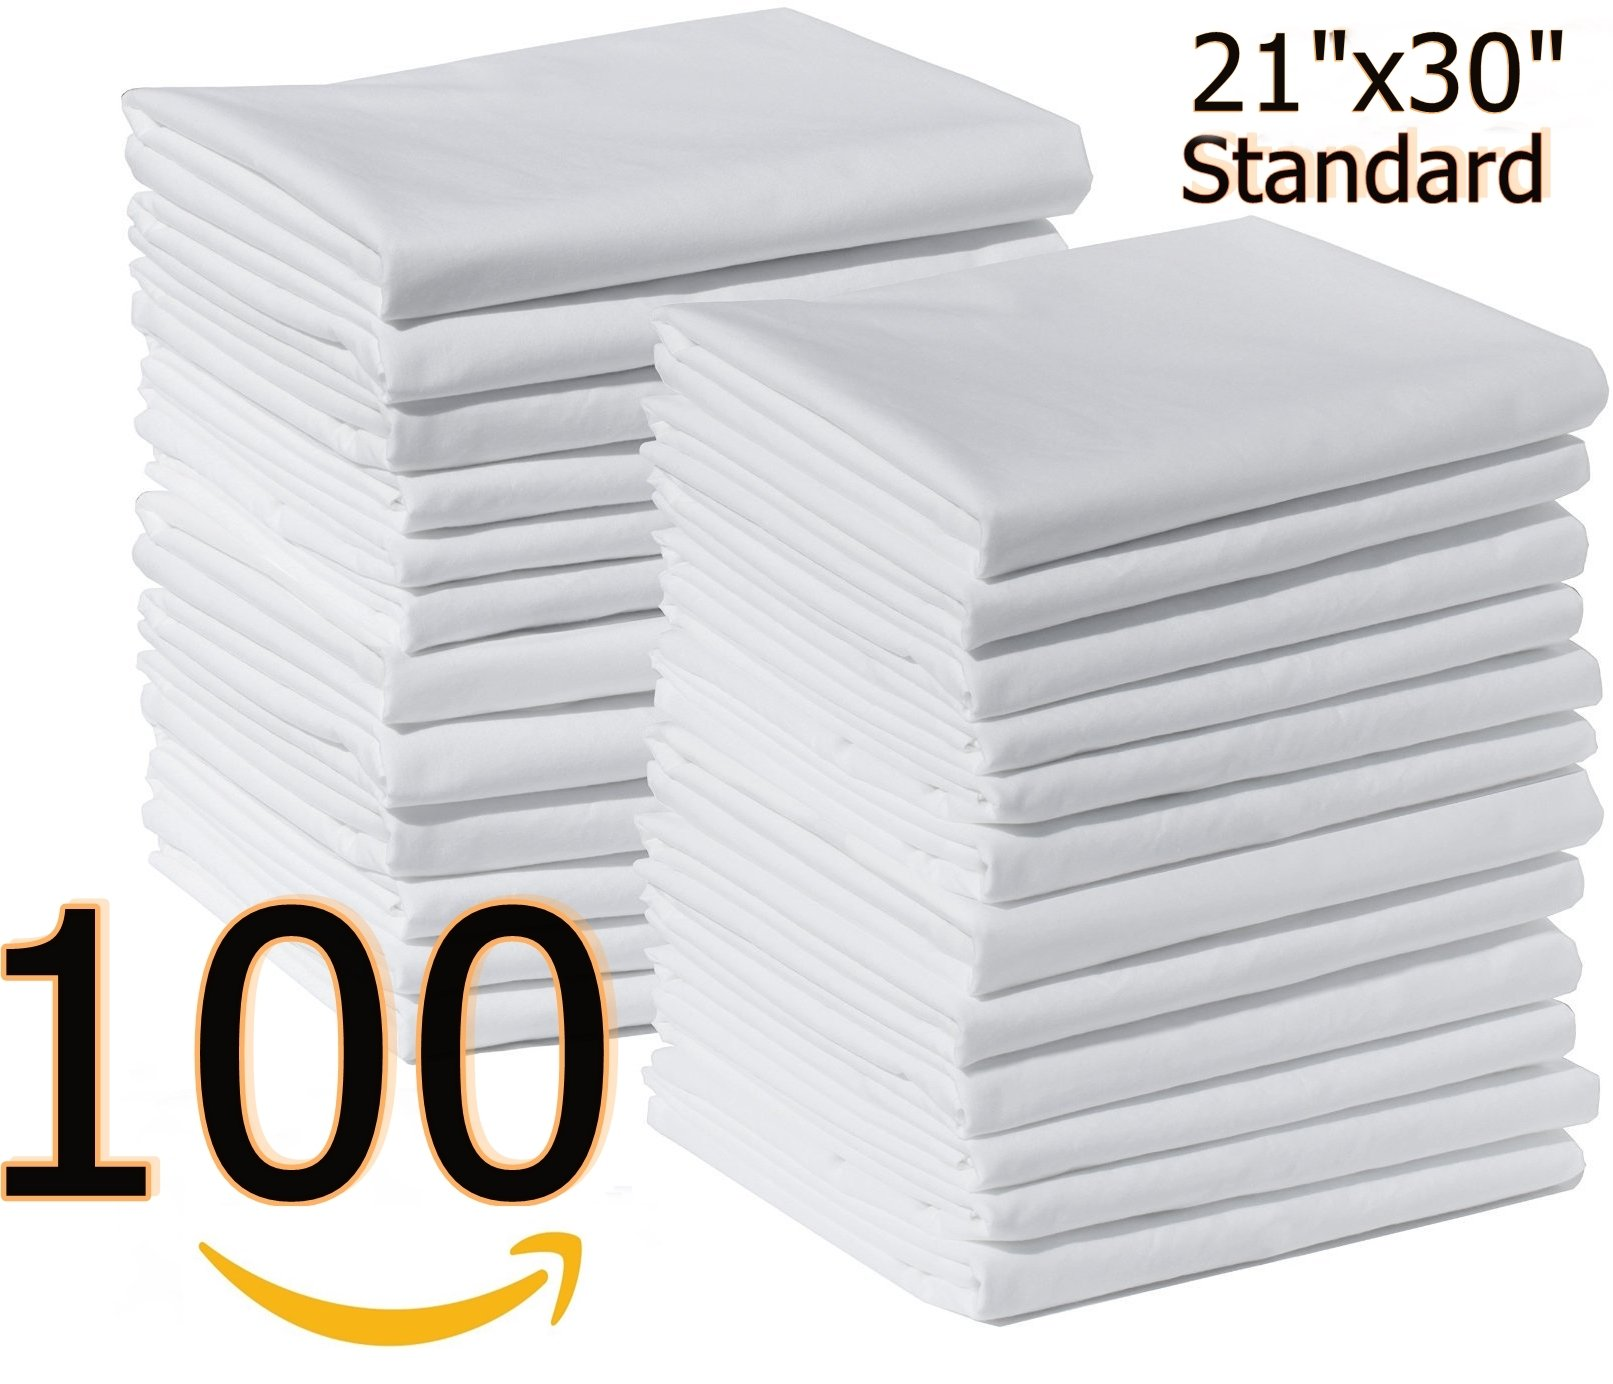 Bulk Pack of 100 Polycotton Standard Size Pillowcase White T-200,42''x36'' (Fits 21'' X30'' pillow) Perfect for Physical Therapy Clinics, Hotels, Camps (100, Standard)